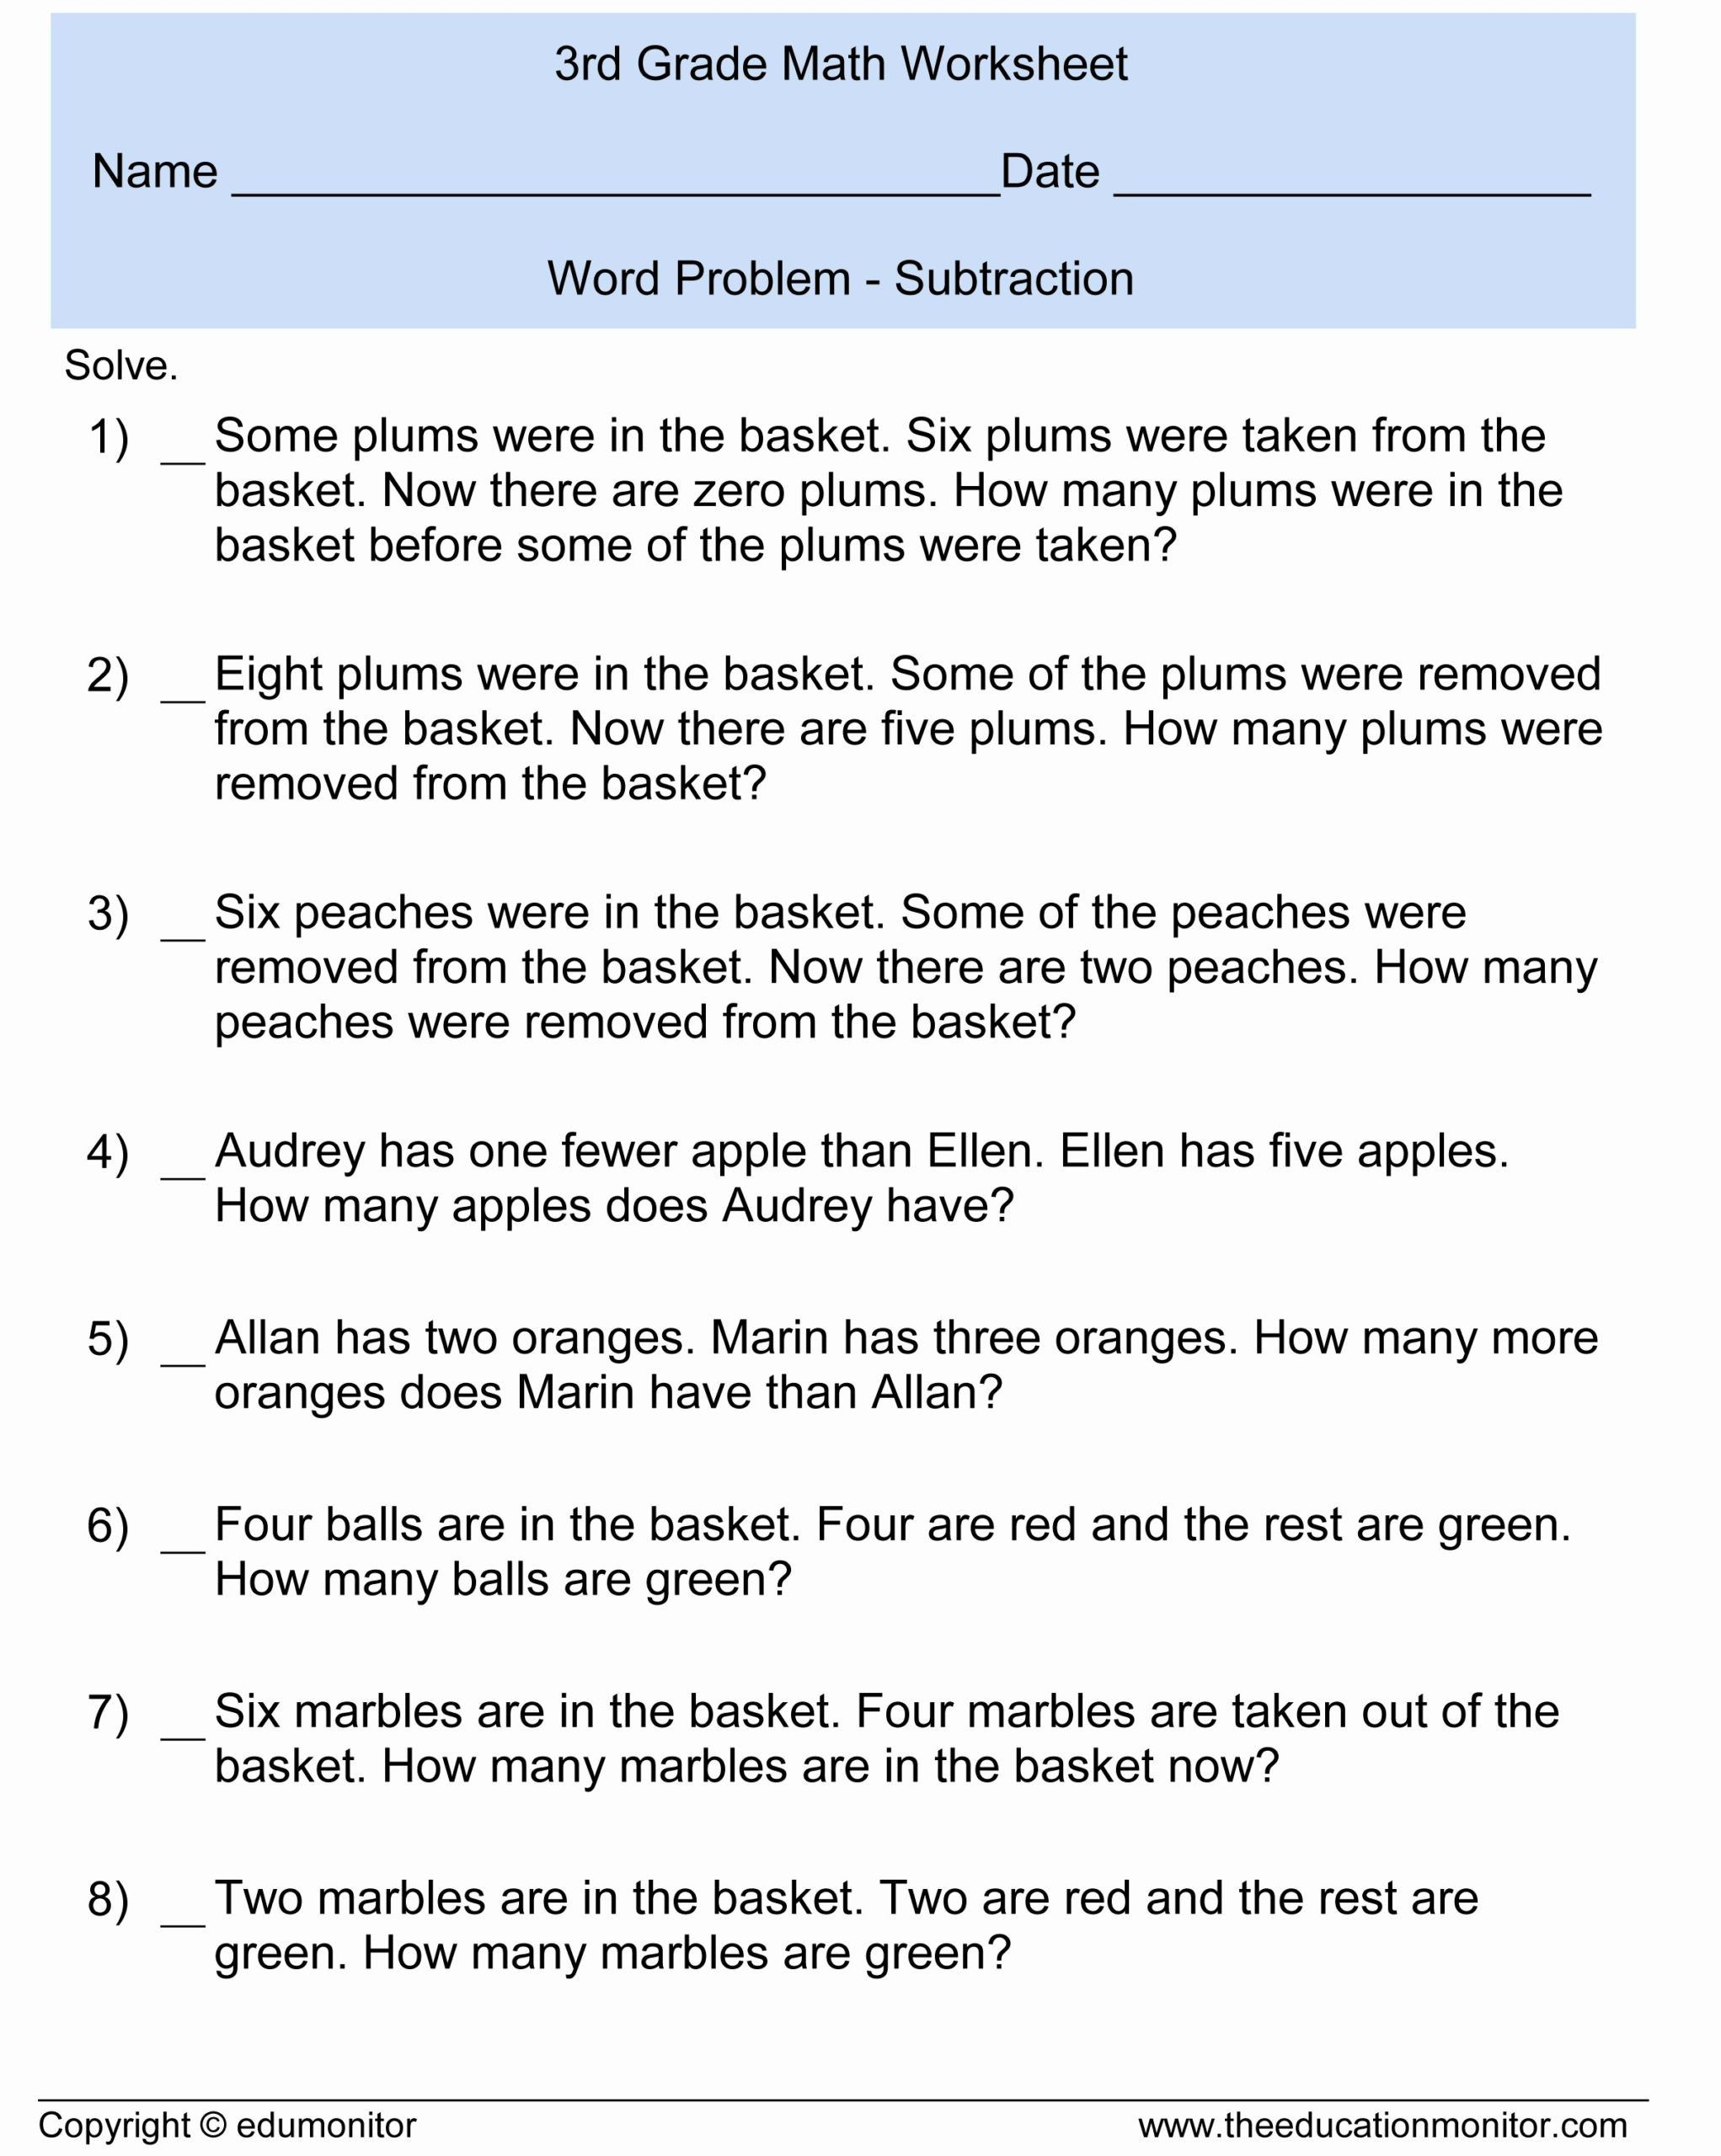 7 4th Grade Math Worksheets Word Problems in 2020 Word